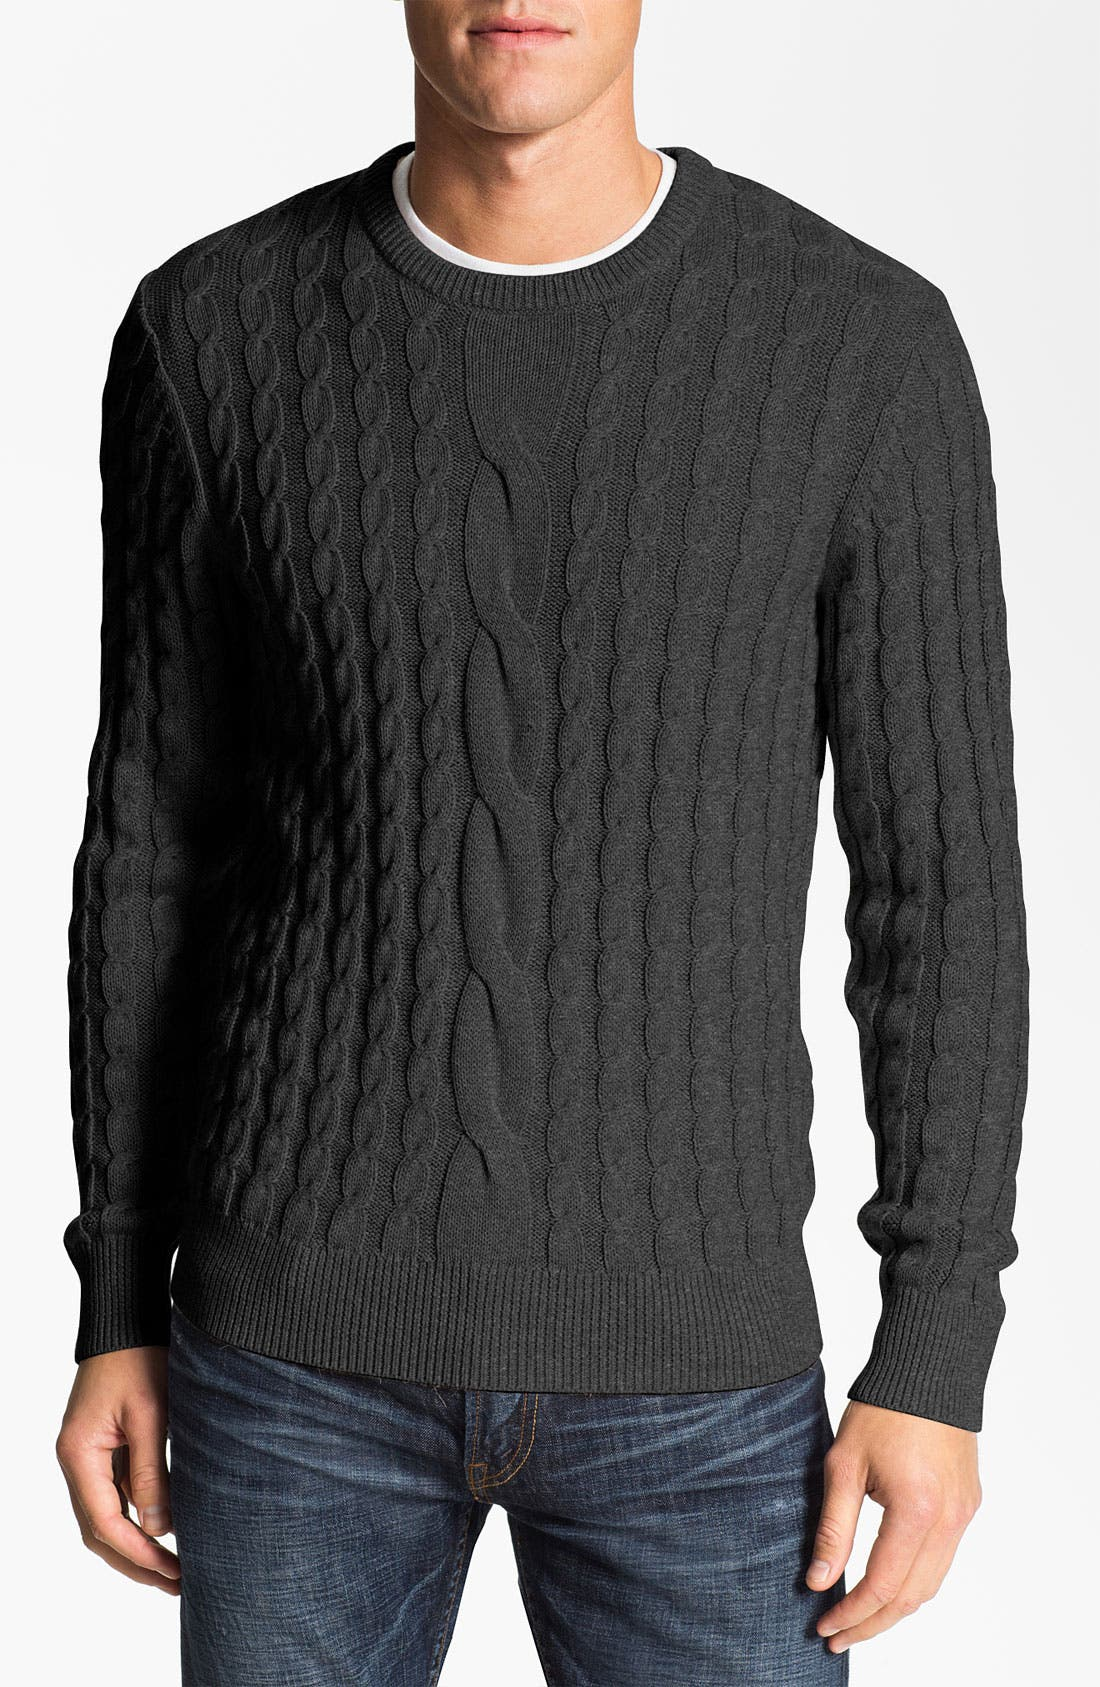 Main Image - 1901 Cabled Crewneck Sweater